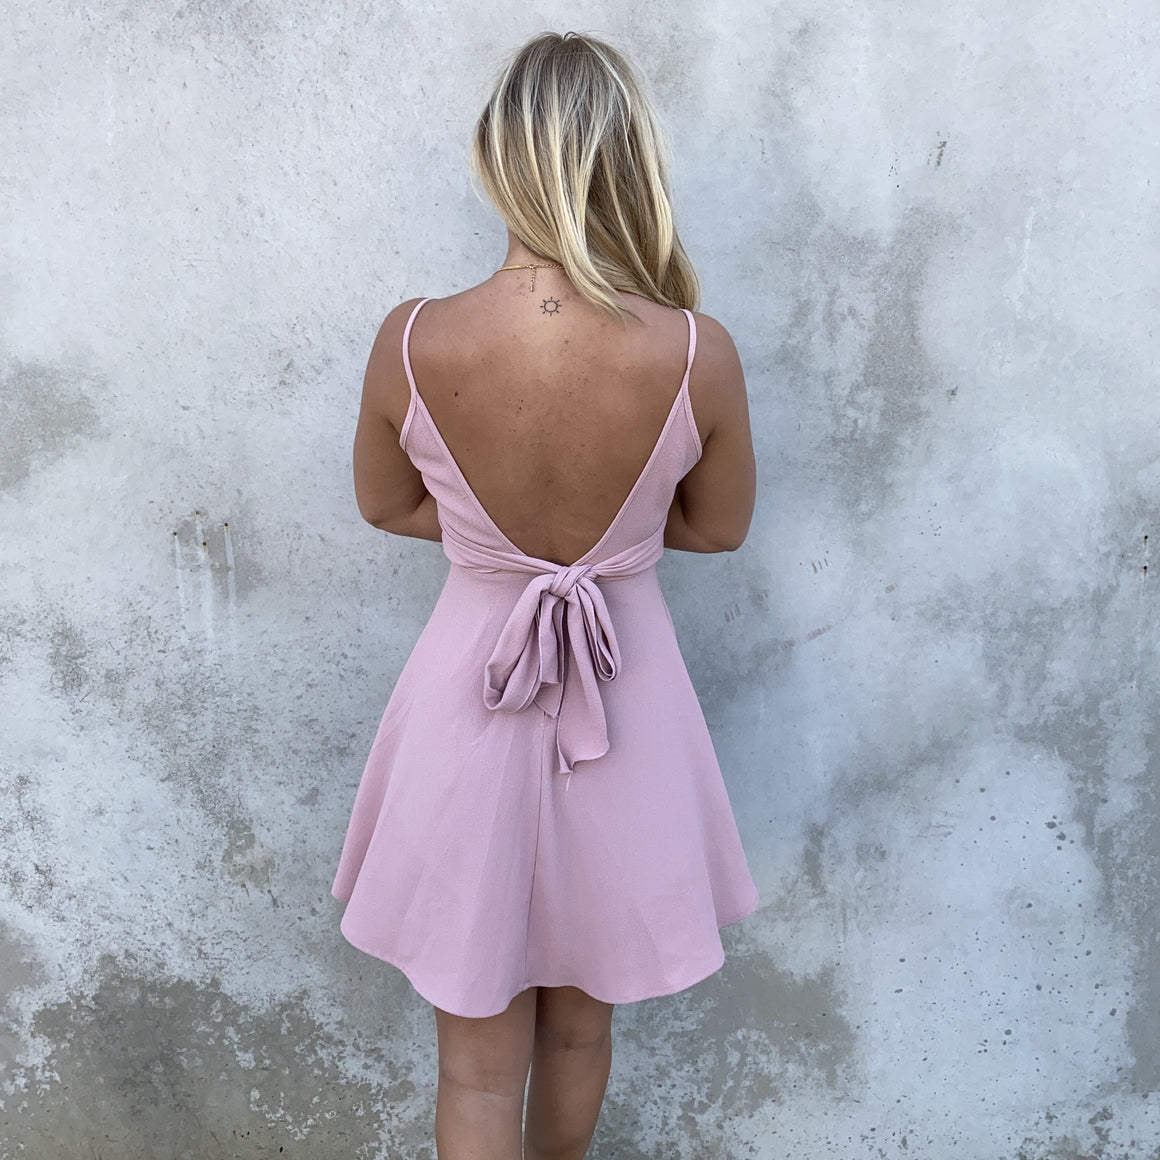 Love Affections Skater Dress in Blush Pink - Dainty Hooligan